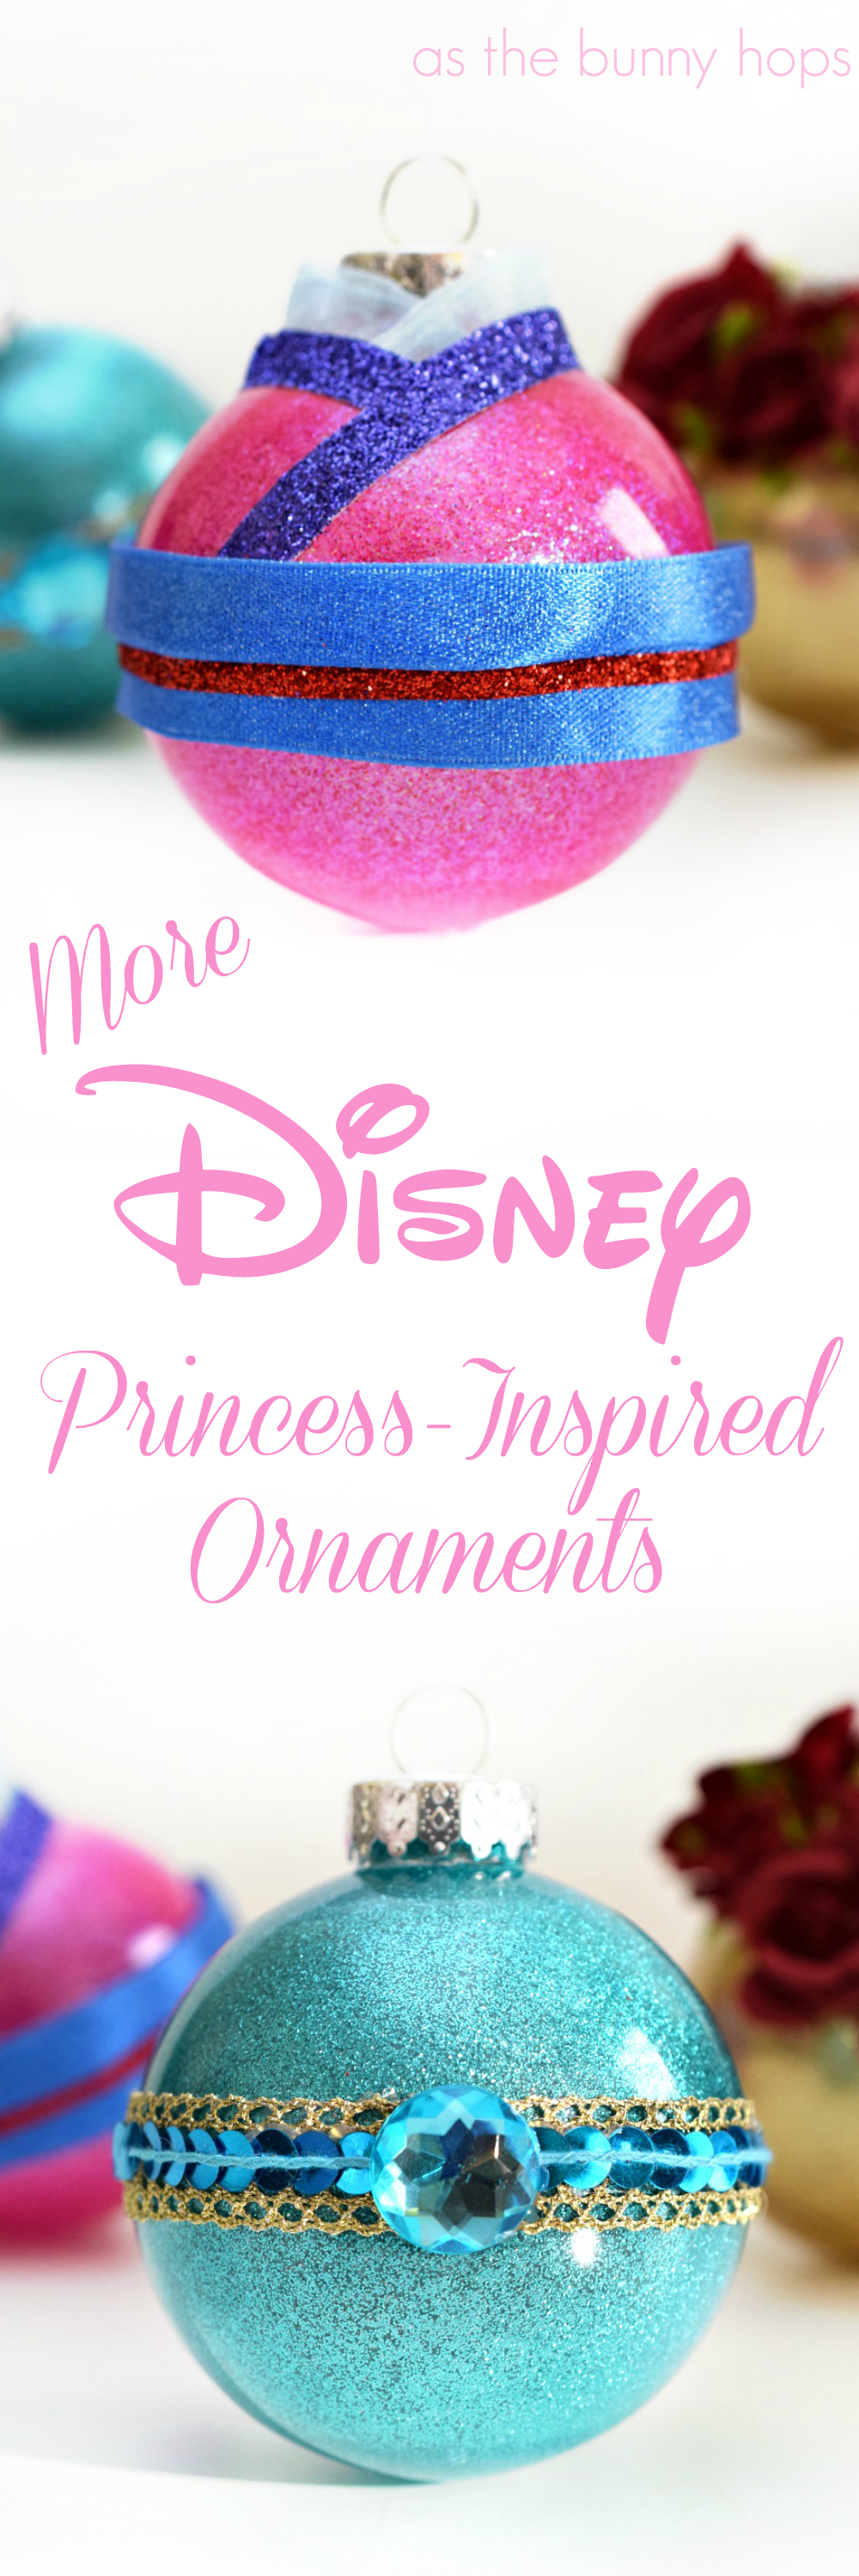 More Disney Princessinspired Christmas Ornaments